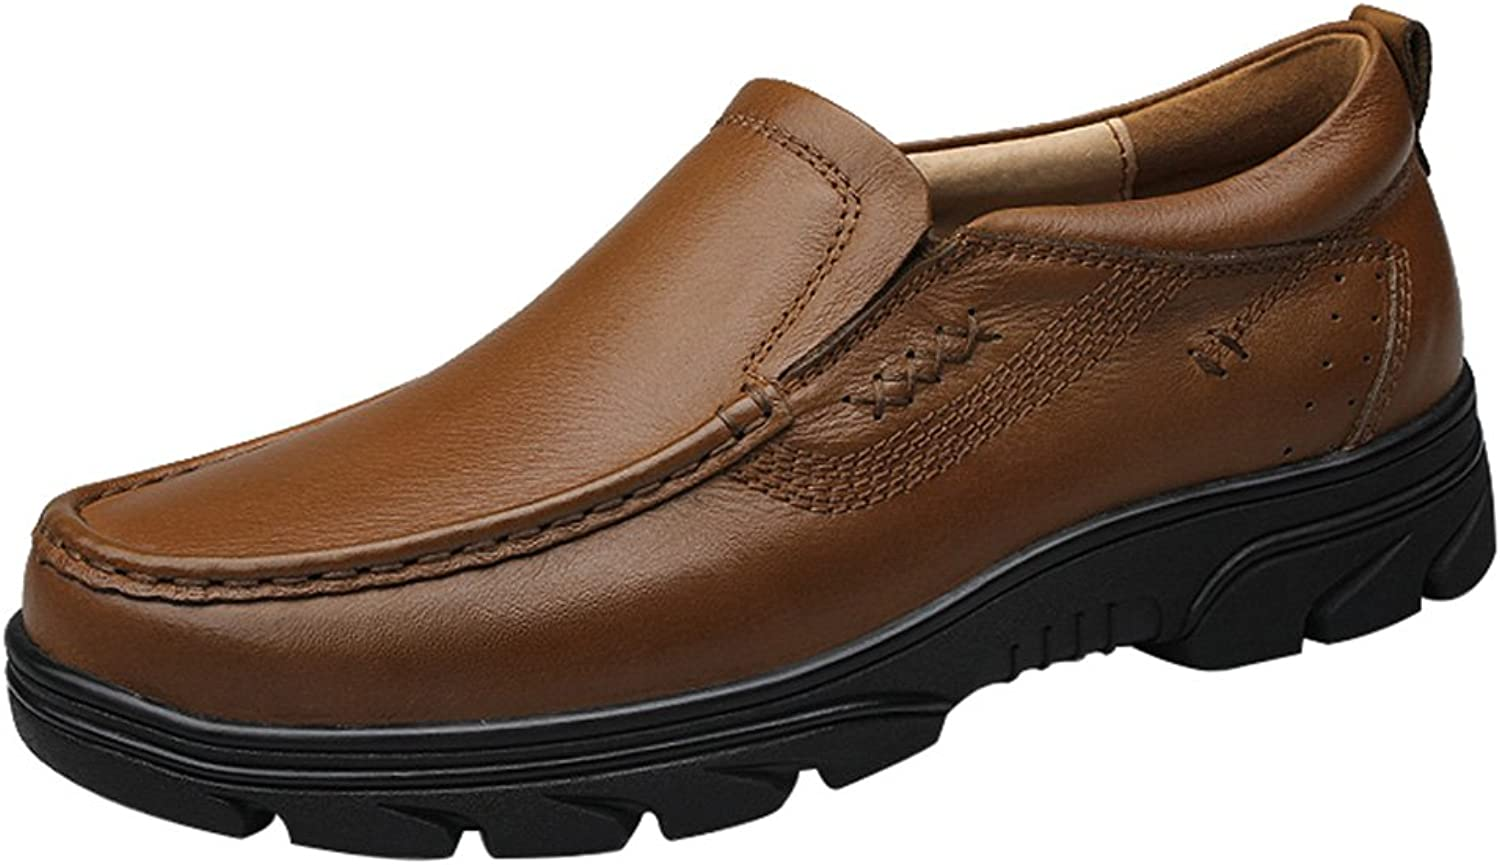 Salabobo FJQY-9388-J New Mens Casual Leather Leisure Comfy Smart Bussiness shoes